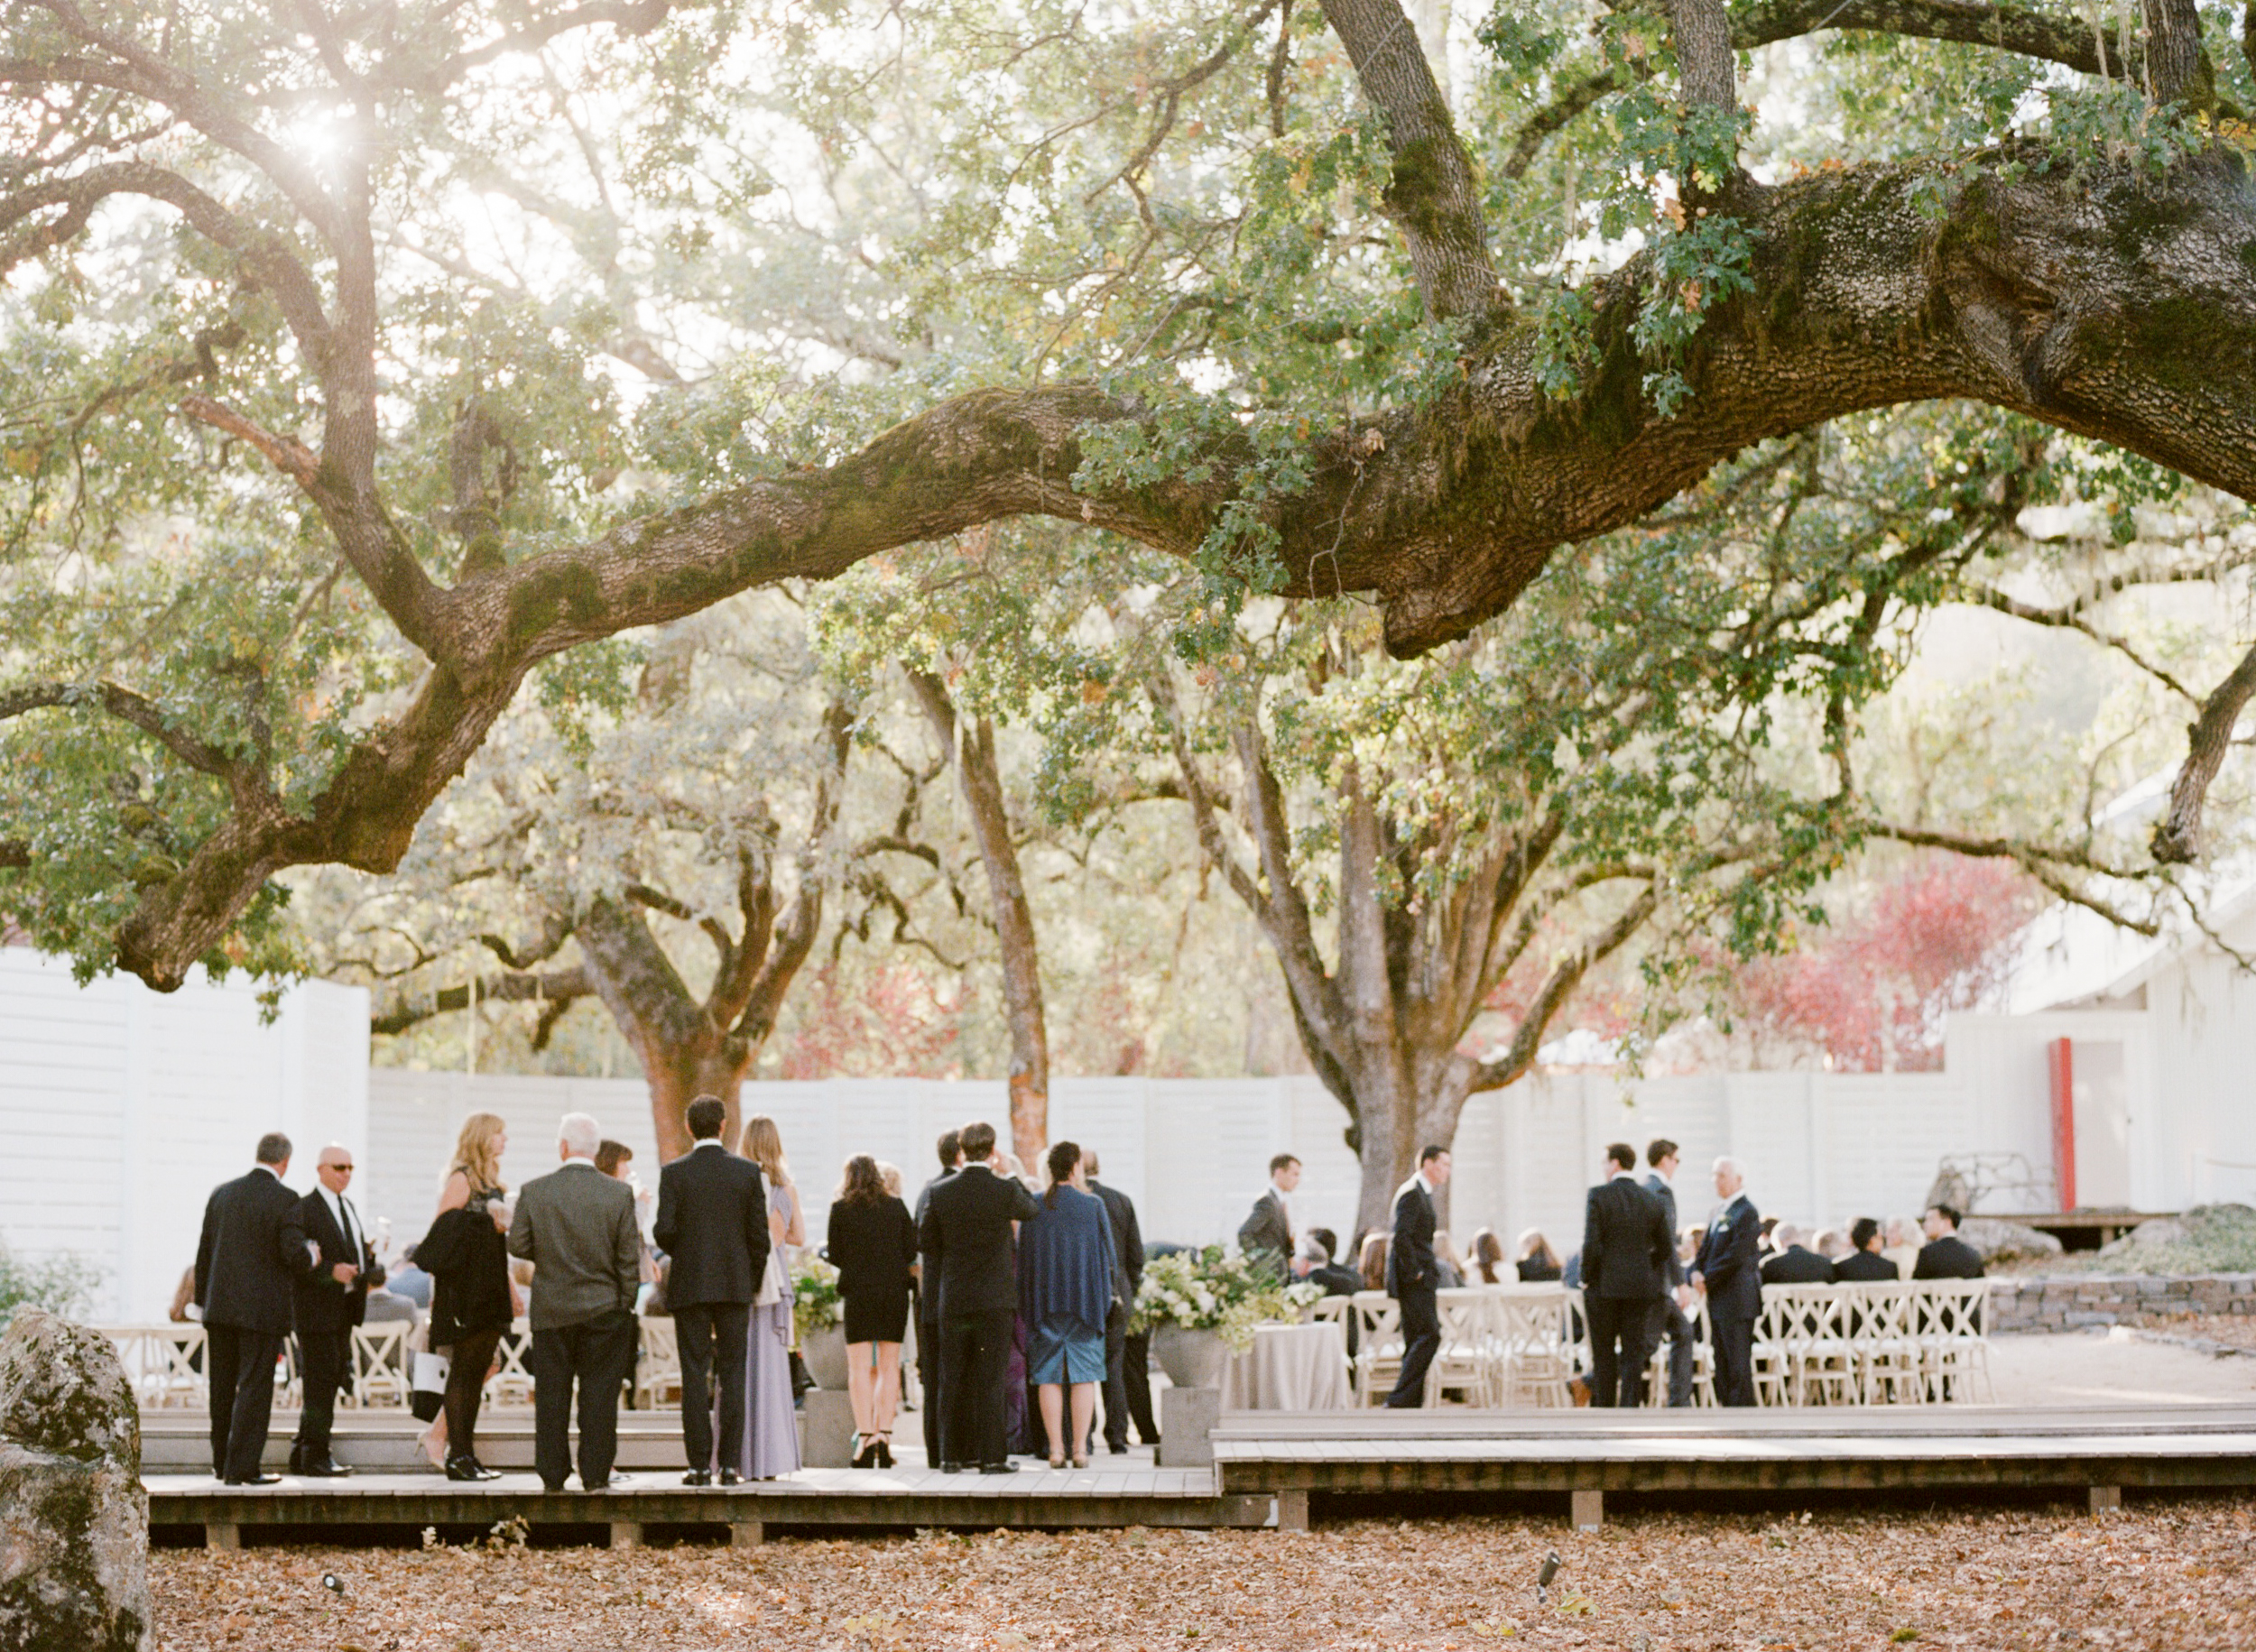 Guests arrive for a wedding ceremony under the oak trees in St. Helena, California; Sylvie Gil Photography